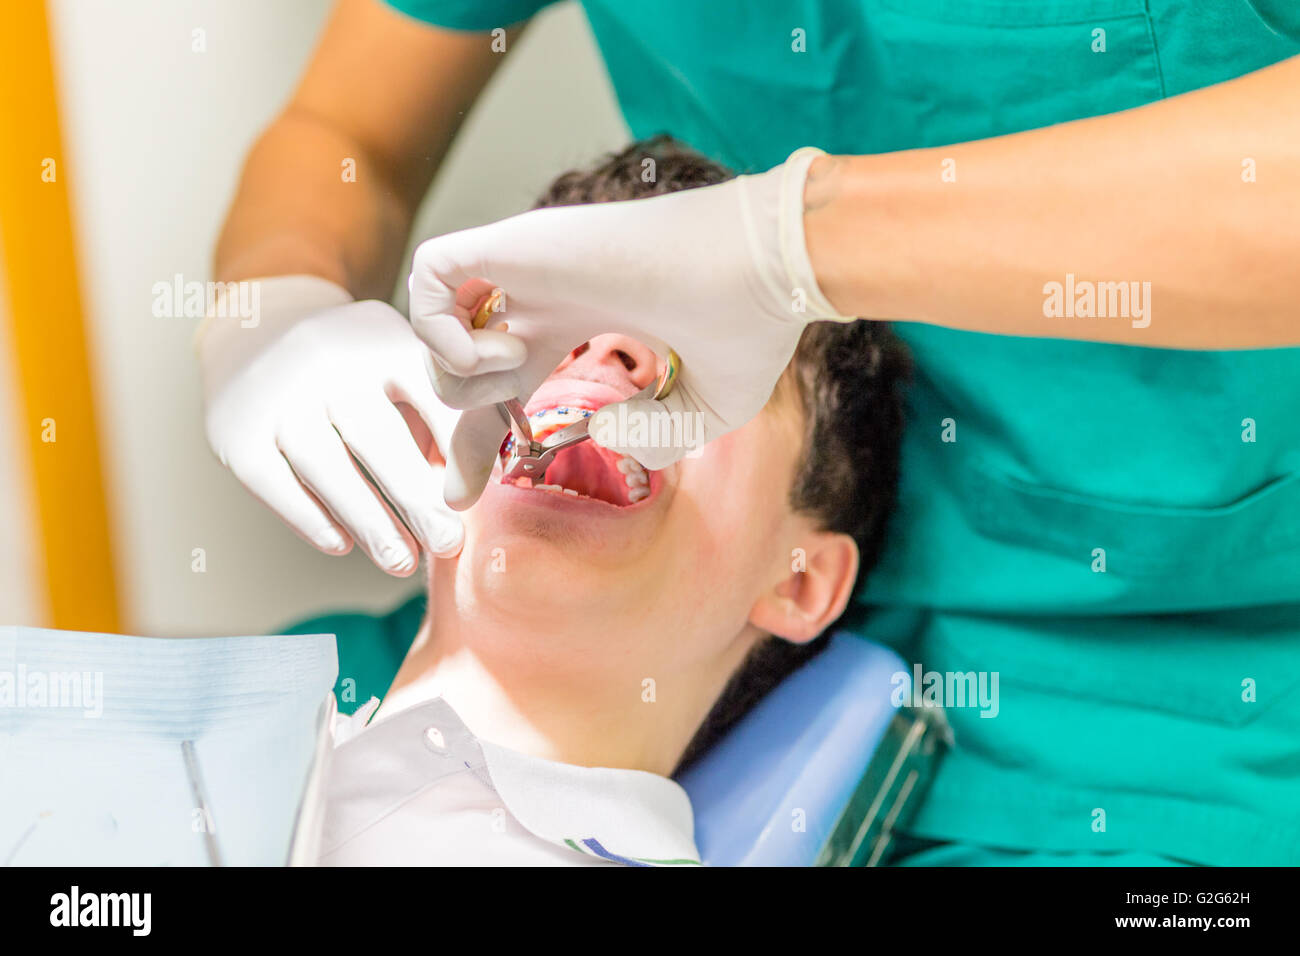 Dentist Pulling Tooth Stock Photos Amp Dentist Pulling Tooth